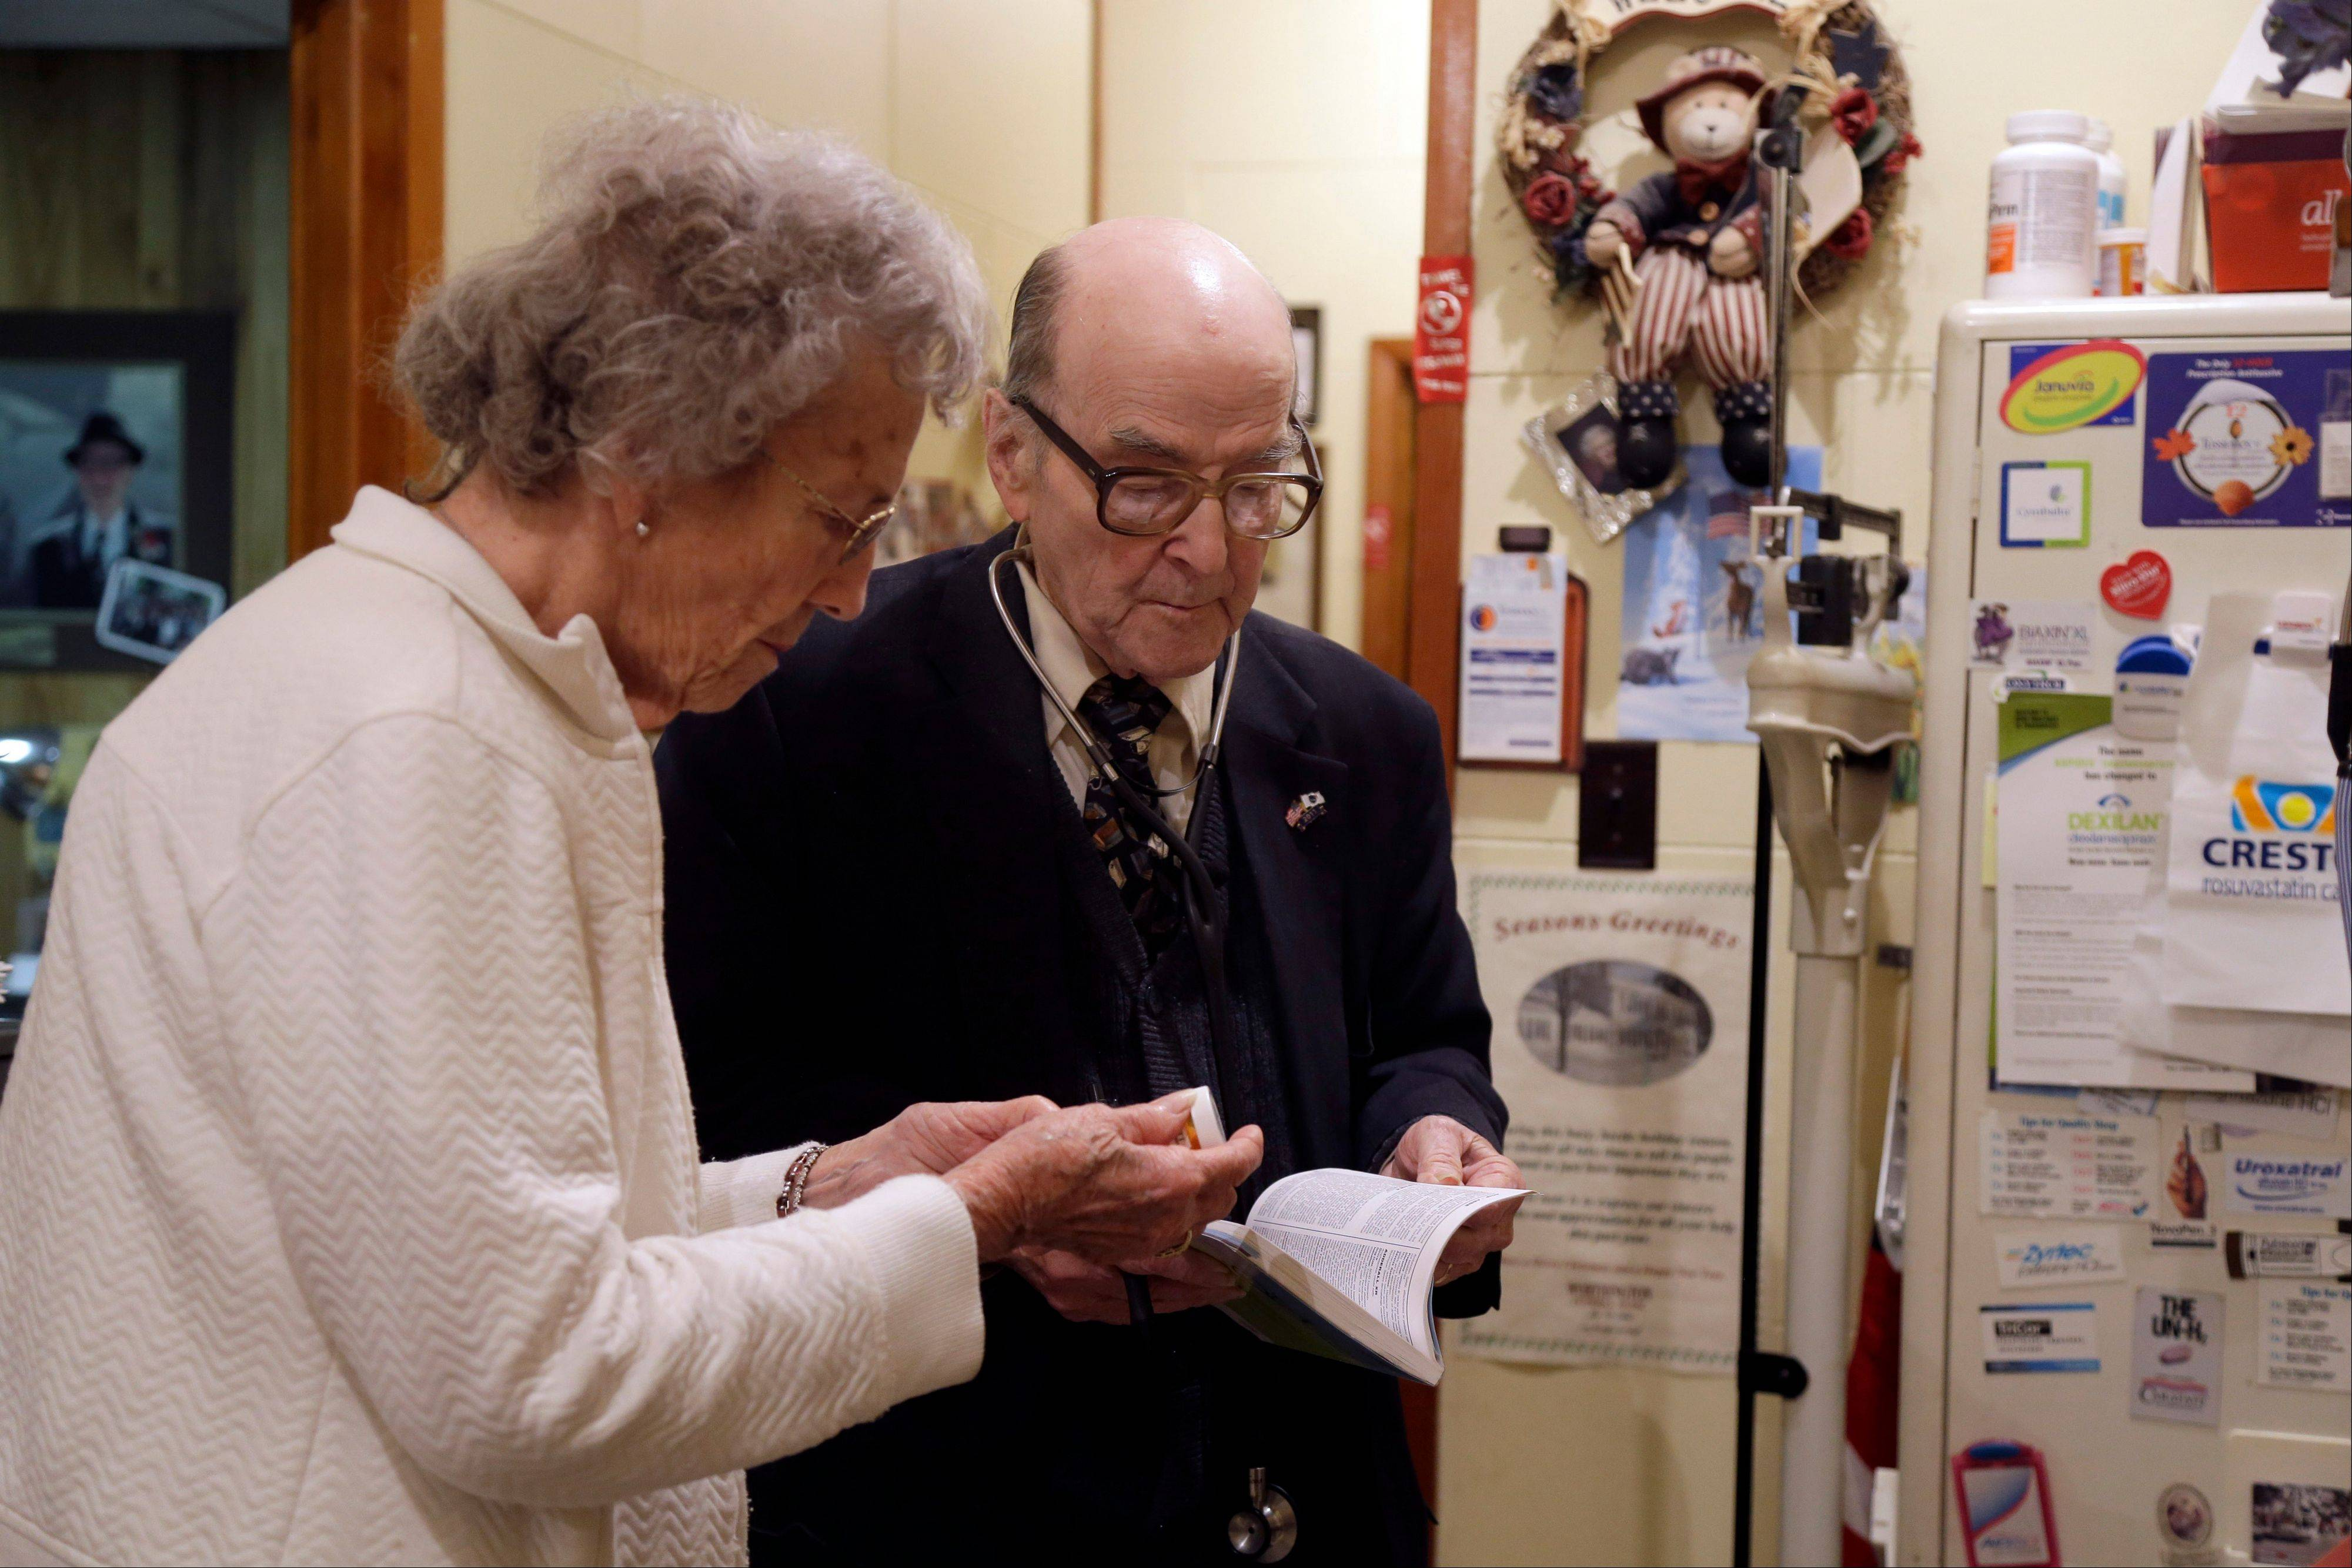 Dr. Russell Dohner talks with nurse Rose Busby about a patient's prescription in Rushville, Ill. In an era of rising health care costs, the 87-year-old doctor only charges patients $5 per office visit and doesn't take insurance saying it isn't worth the bother.